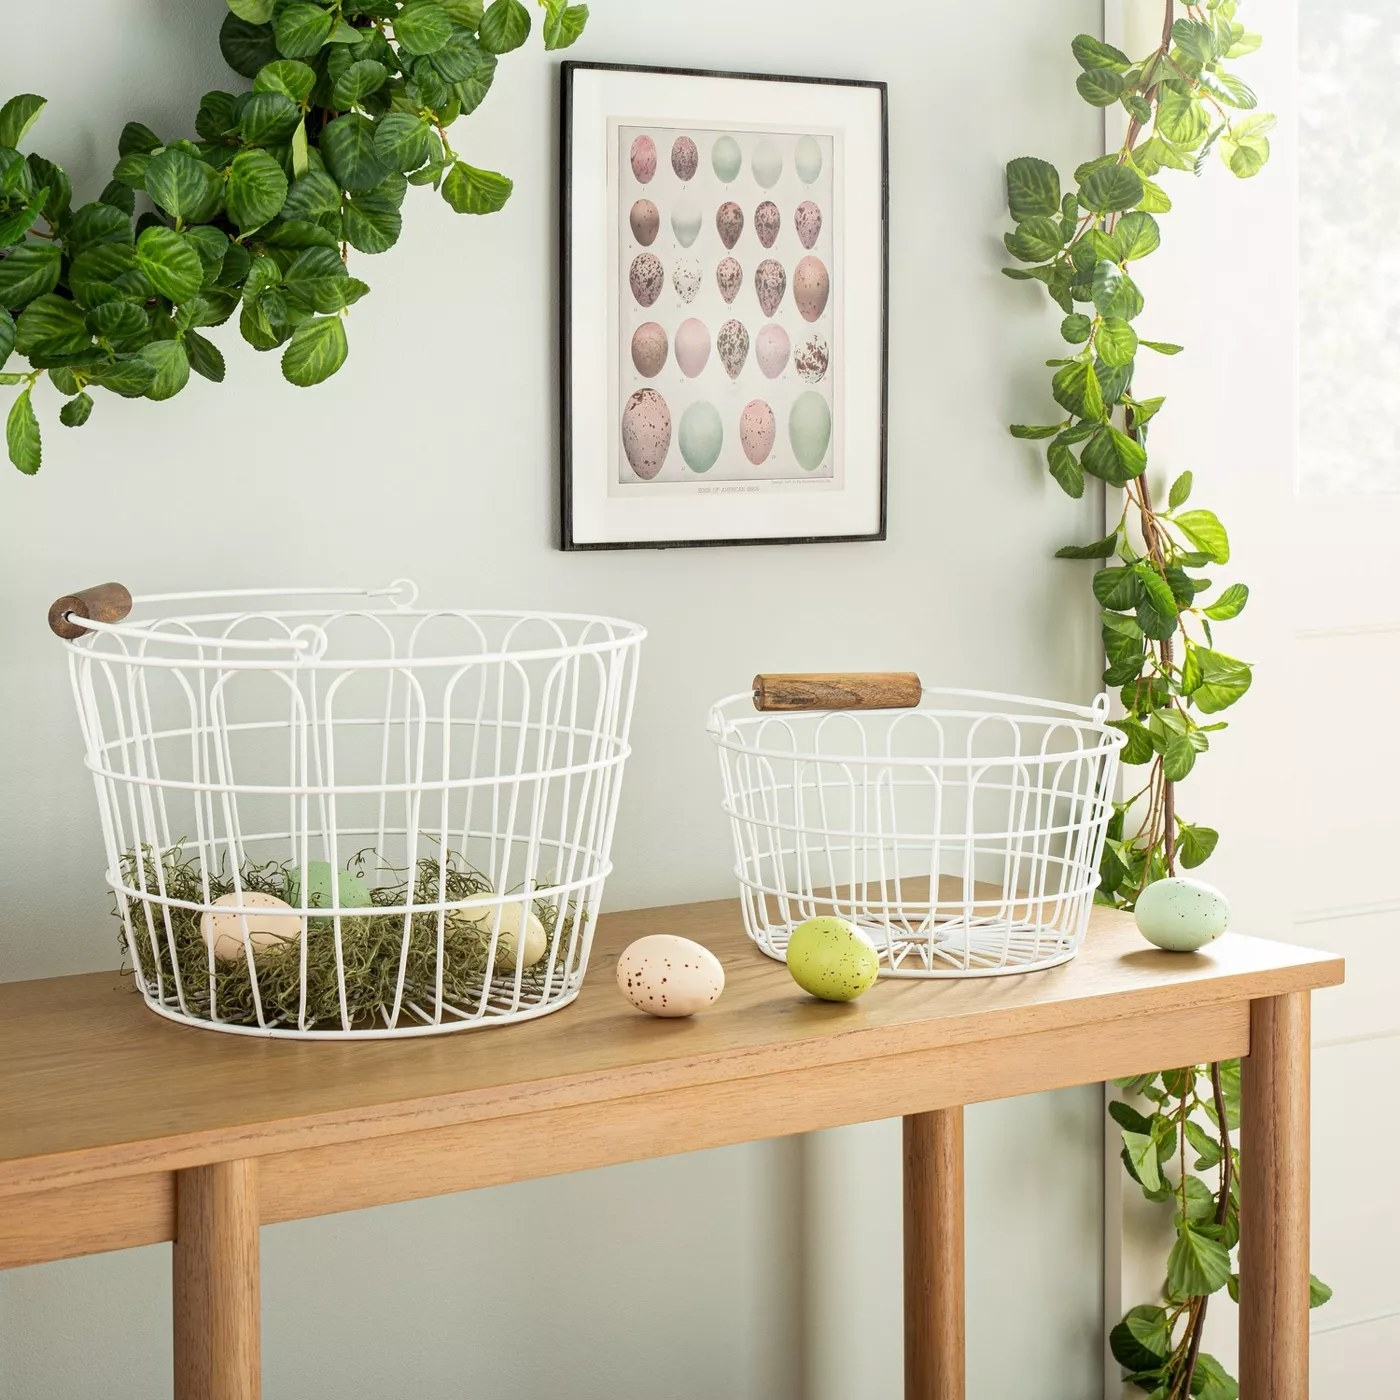 The white wire baskets on a table holding Easter decorations